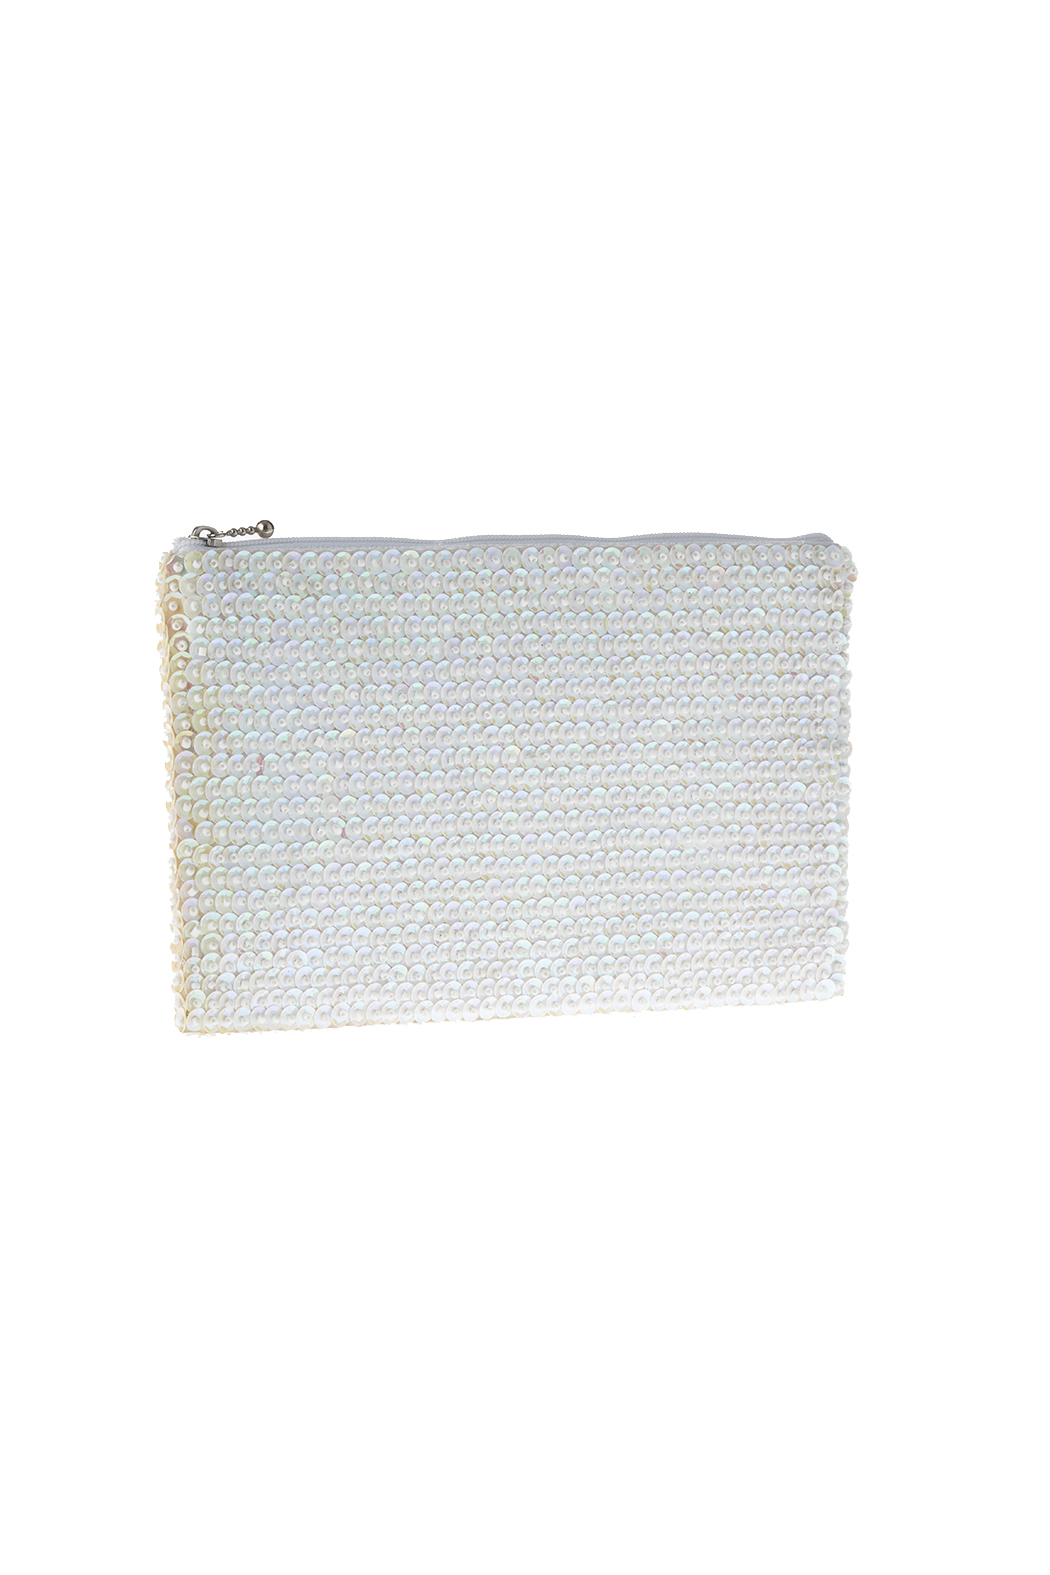 tu-anh White Signature Clutch - Main Image